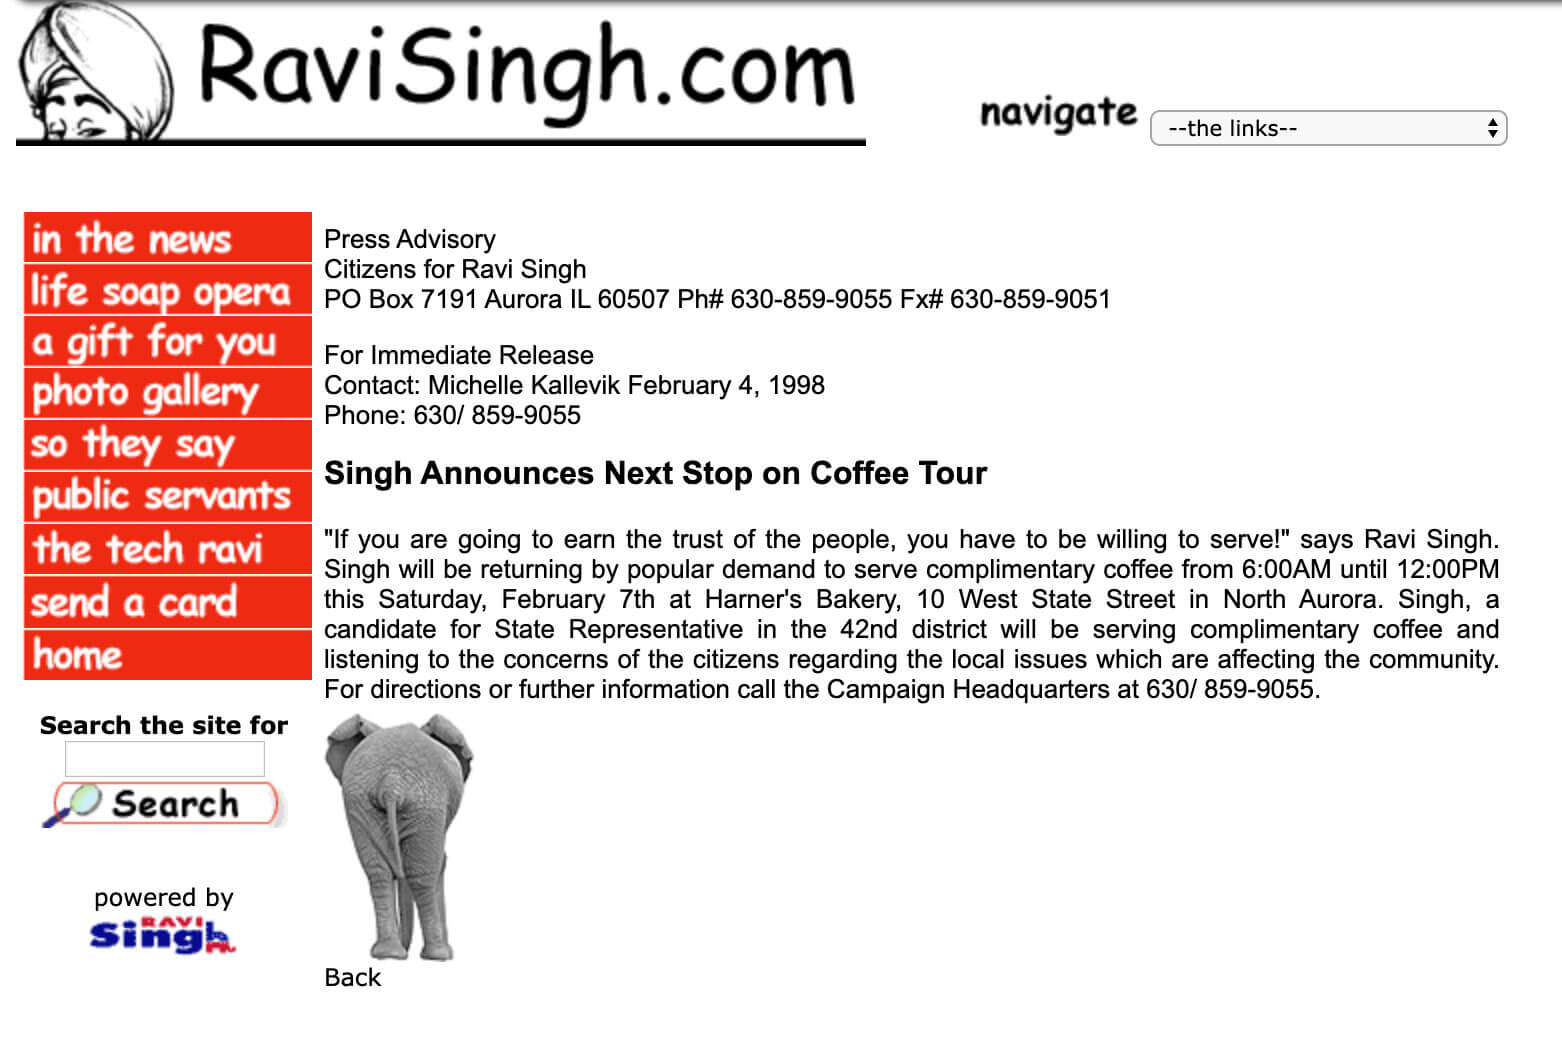 Singh Announces Next Stop on Coffee Tour